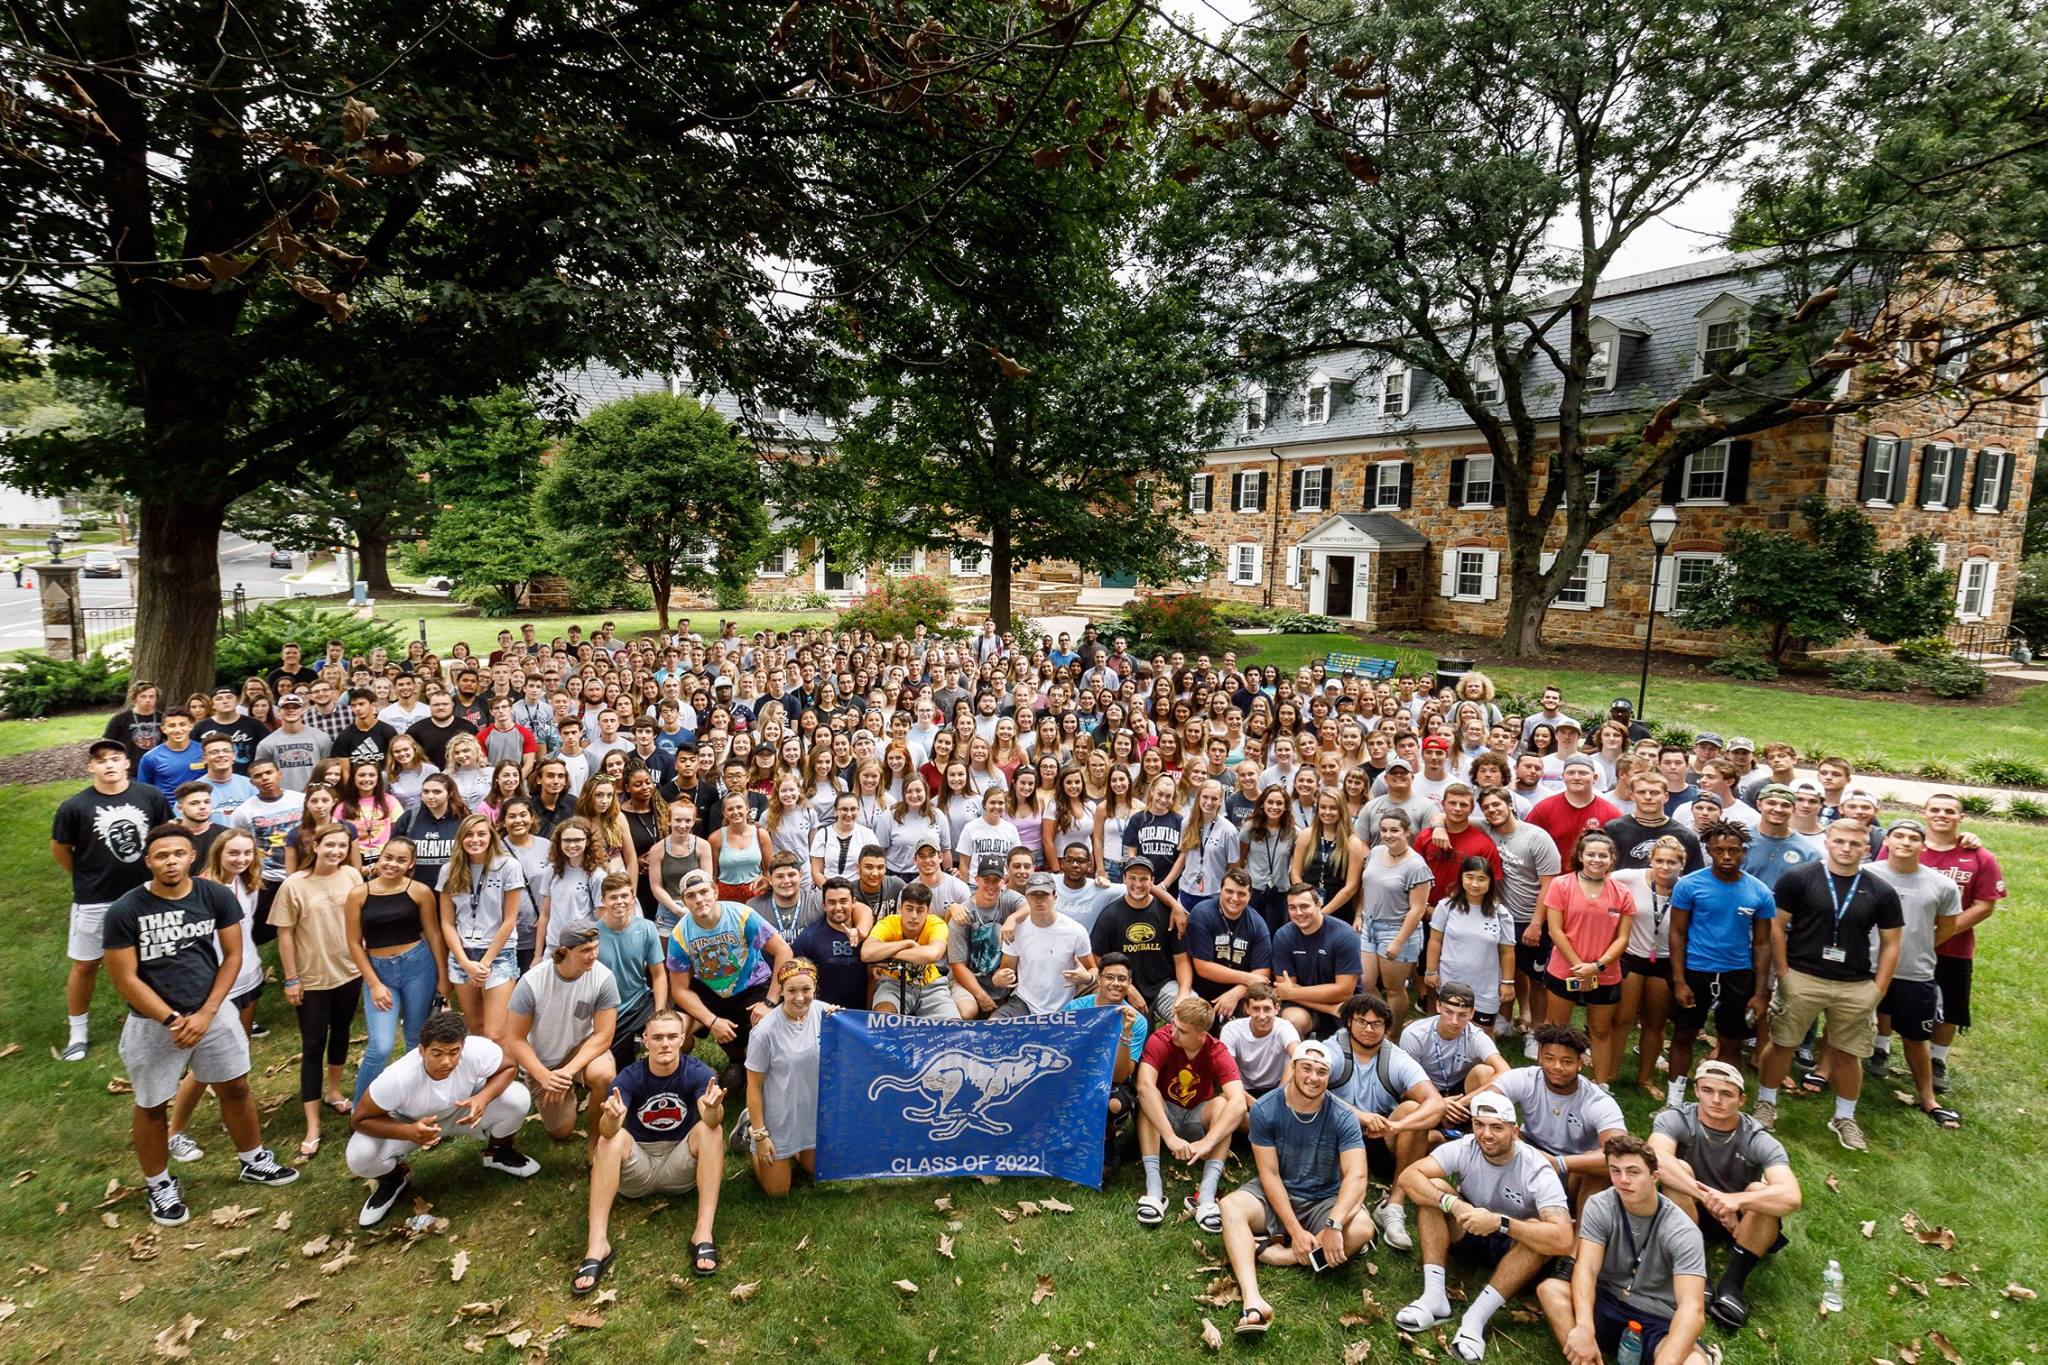 The freshmen class of 2022, which is about 450 students, is seated on the lawn looking up at the camera